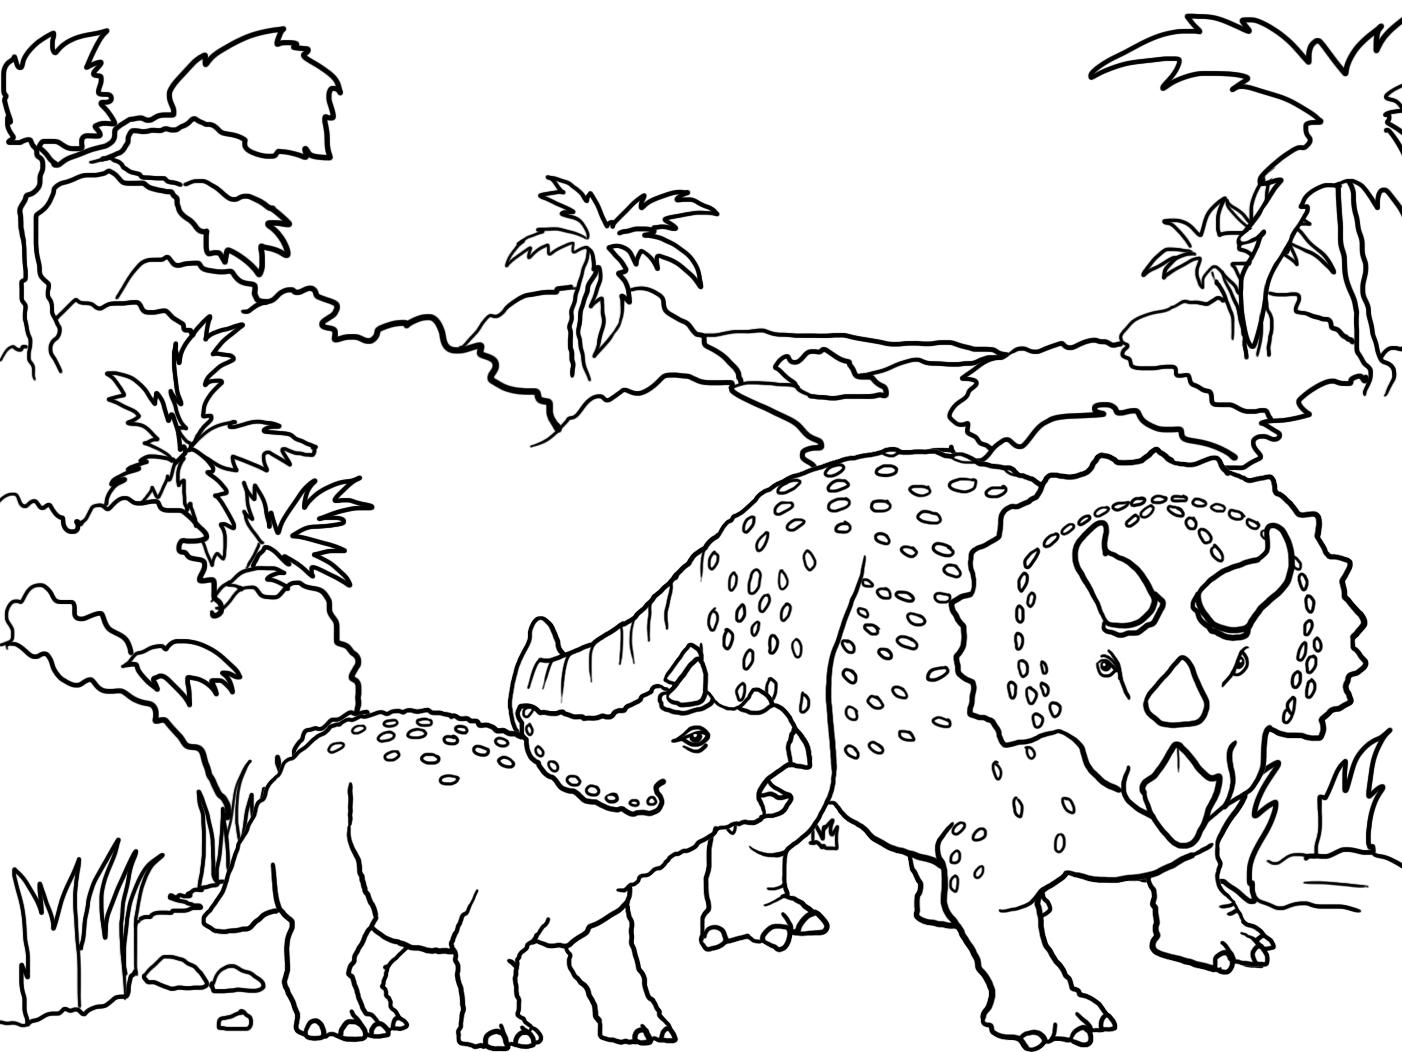 dinosaur landscape coloring page free coloring pages printable pictures to color kids landscape page coloring dinosaur